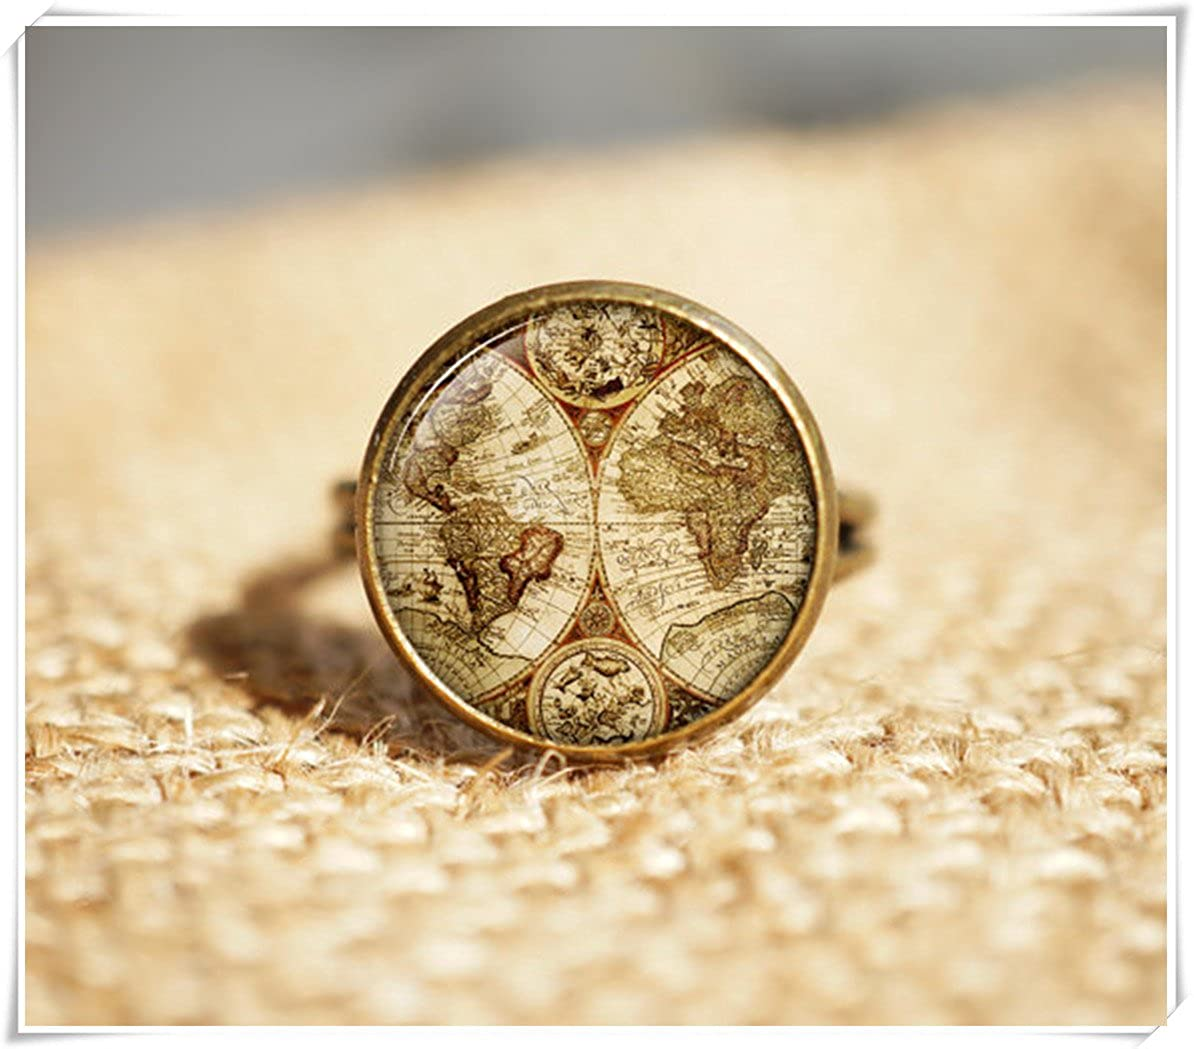 Antique World Map Rings, world map rings, Travel Rings Dandelion chen JX11